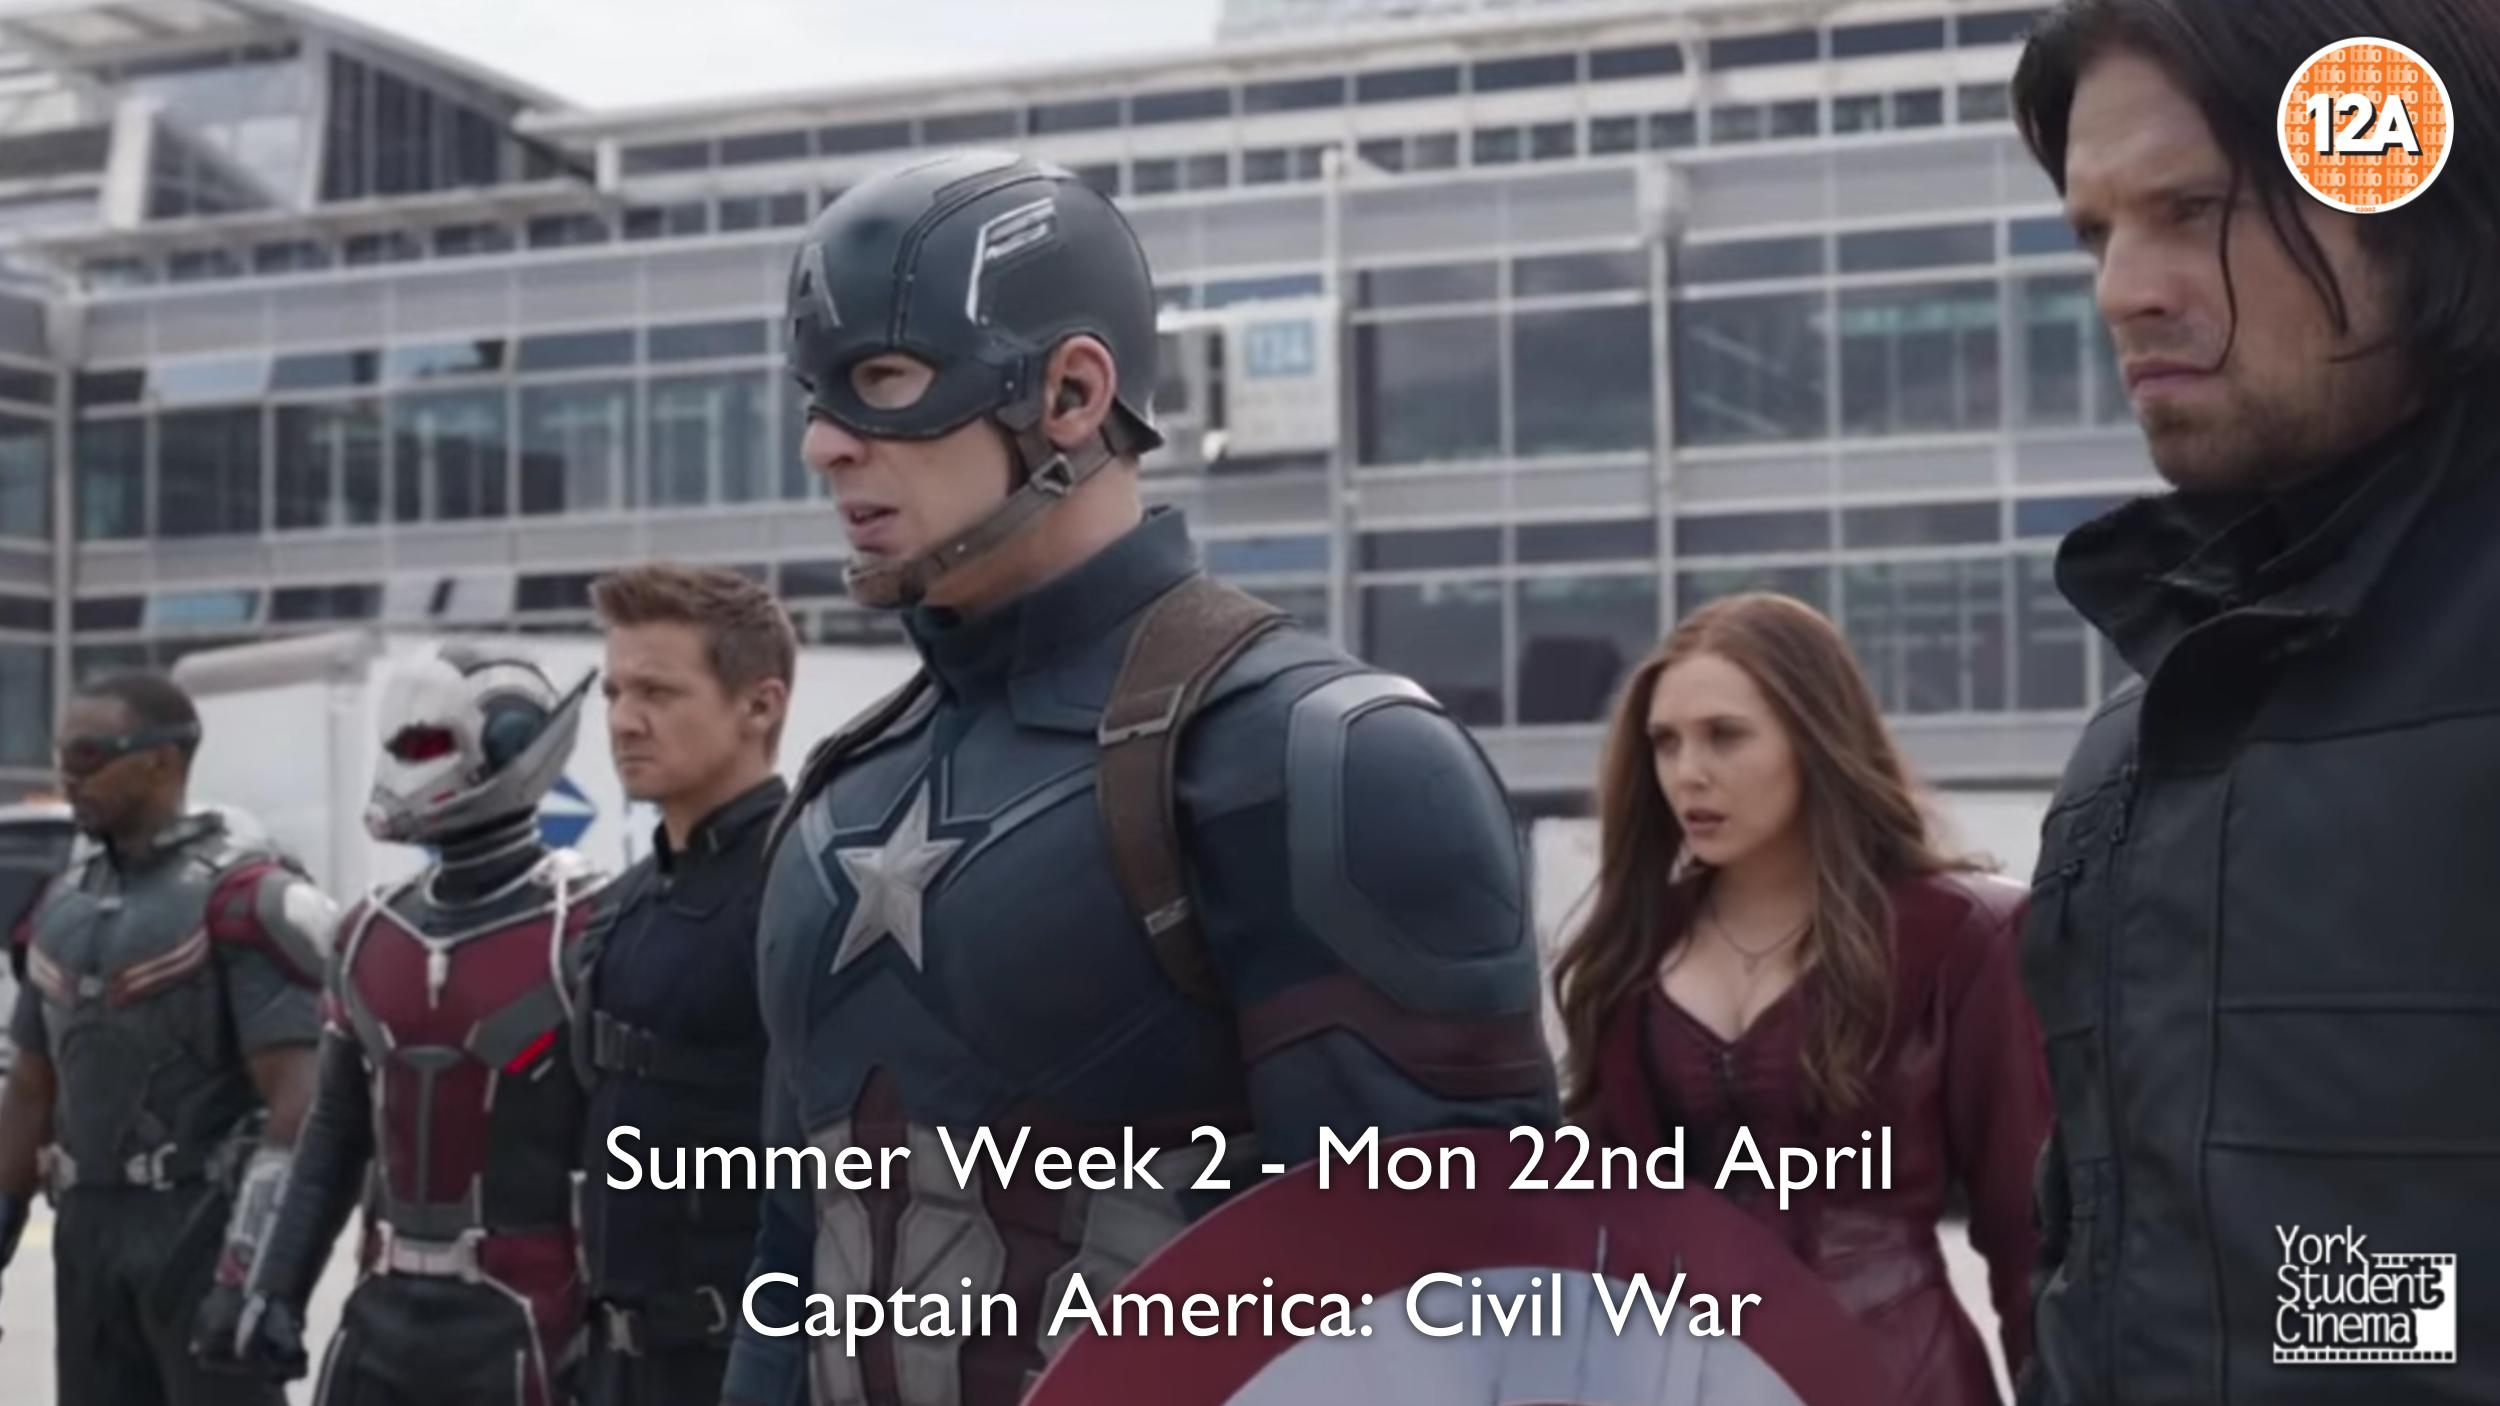 YSC Screening of Captain America: Civil War